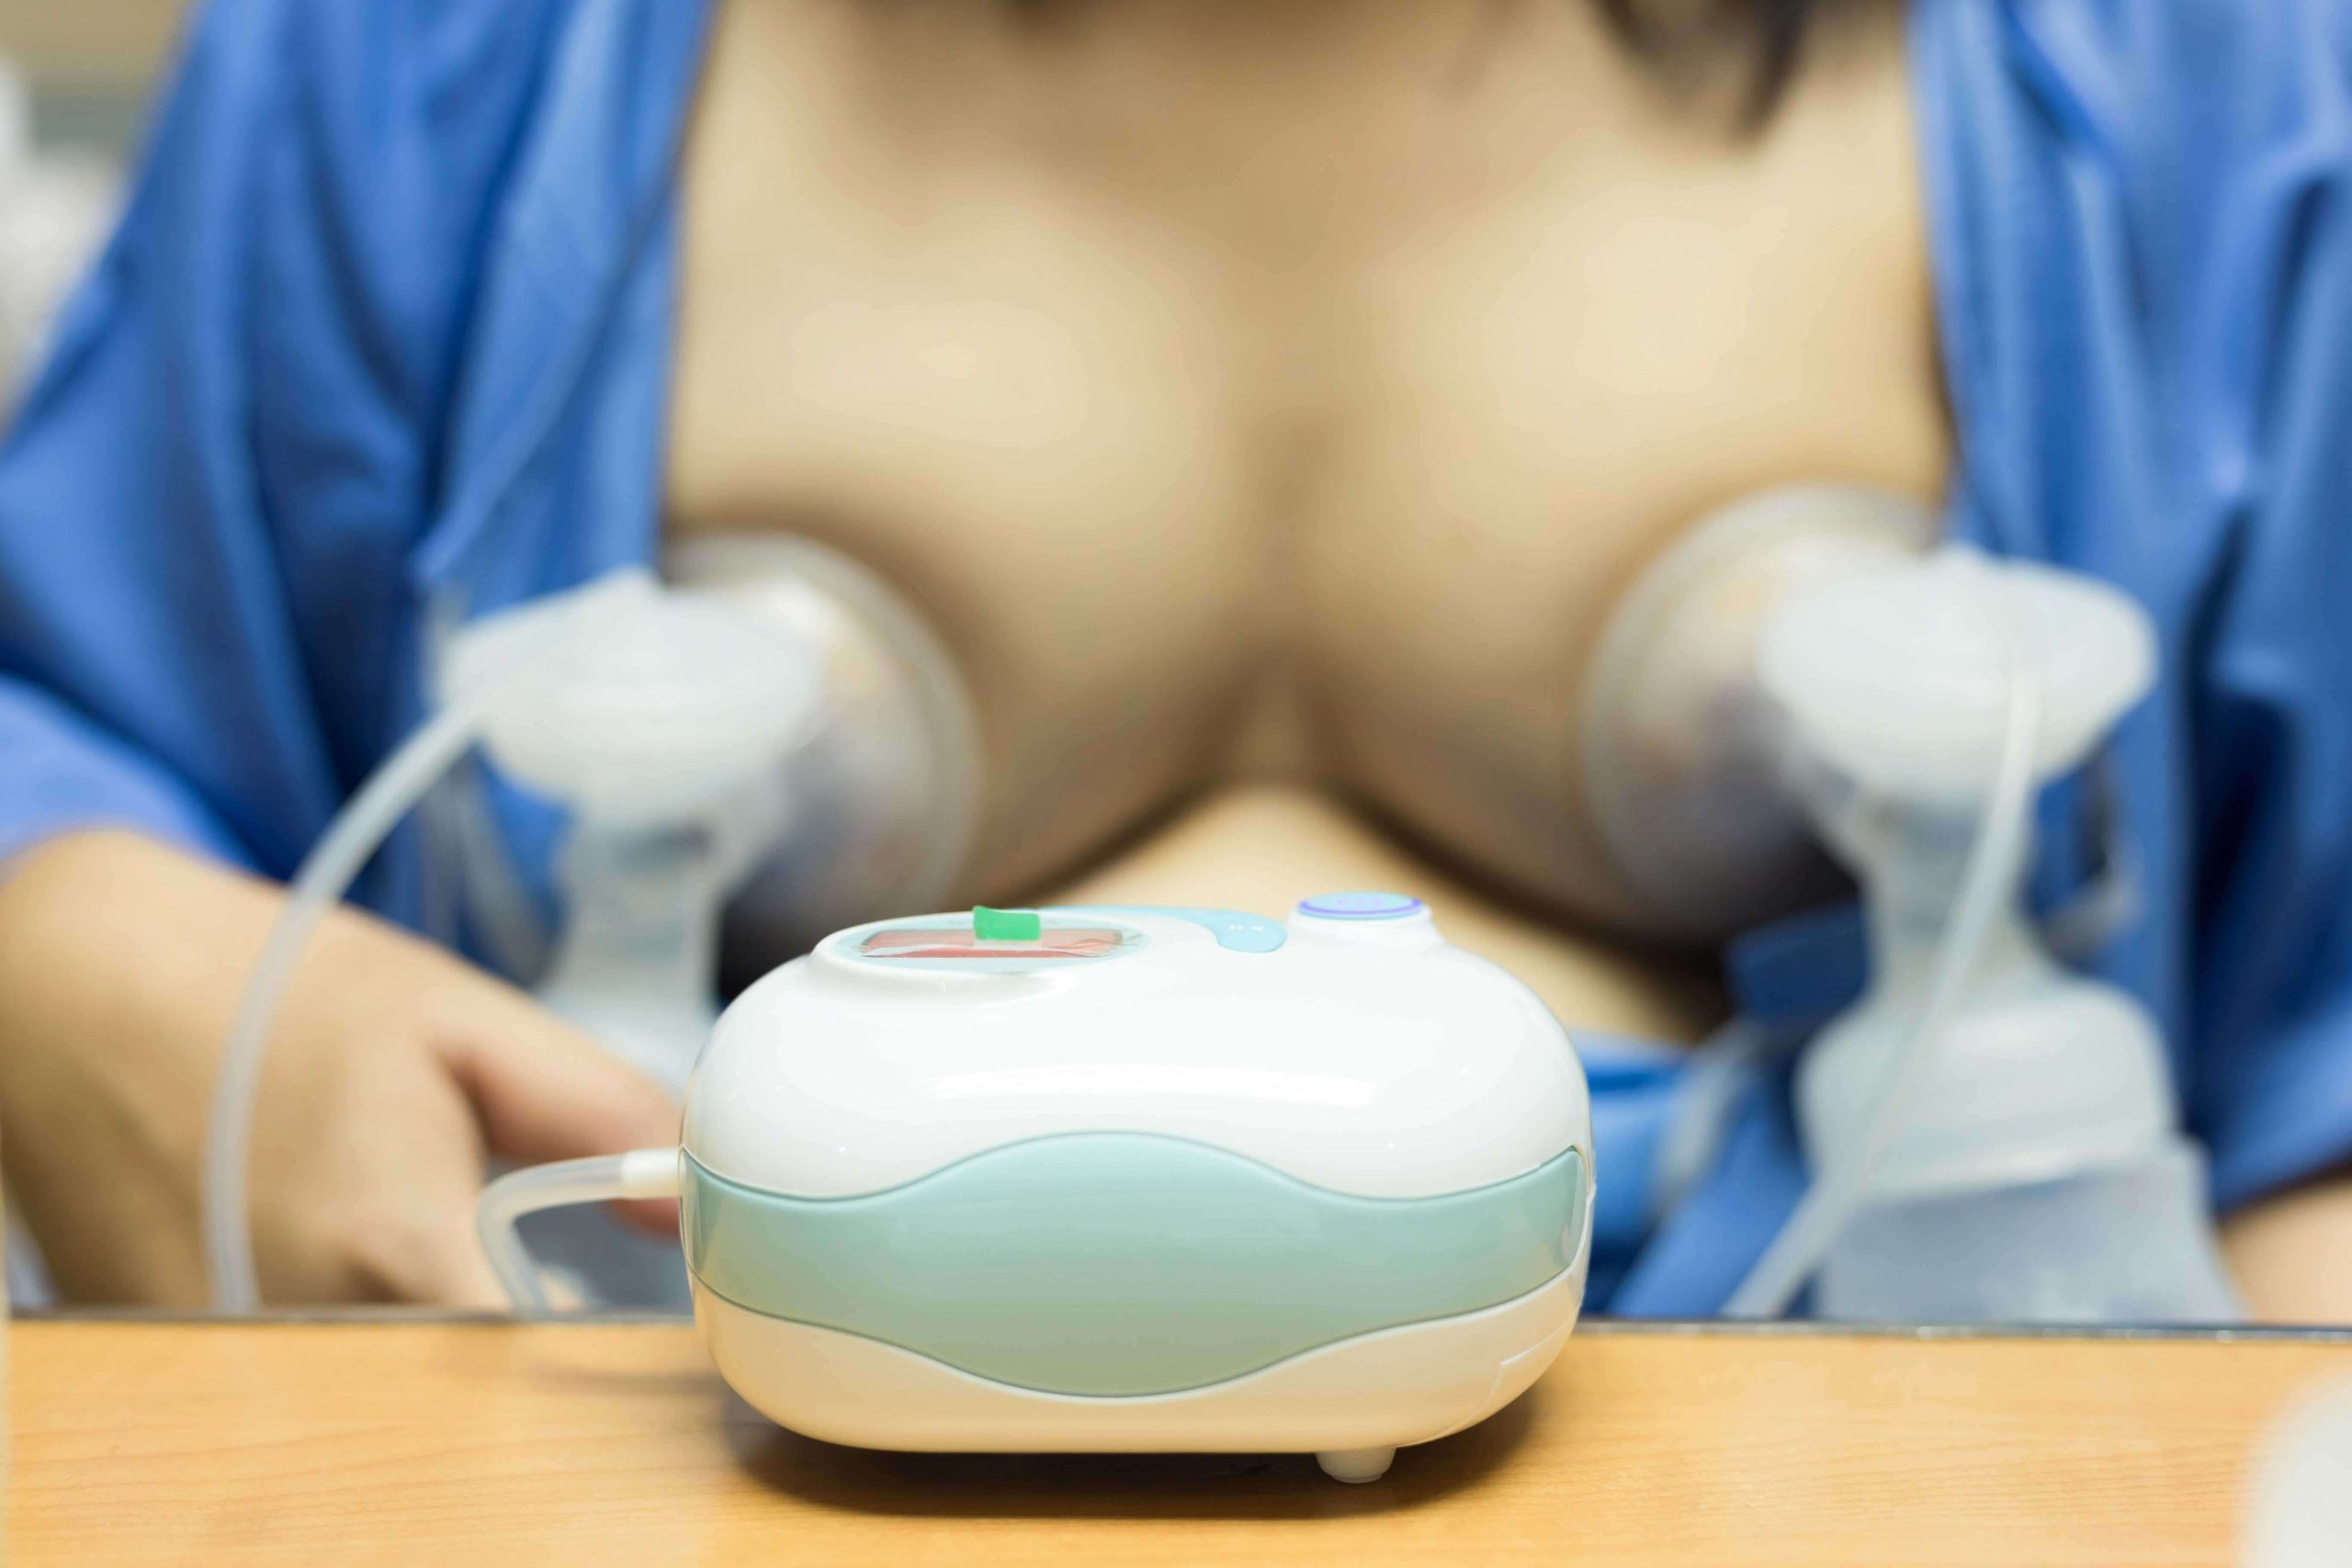 All about breast pumping